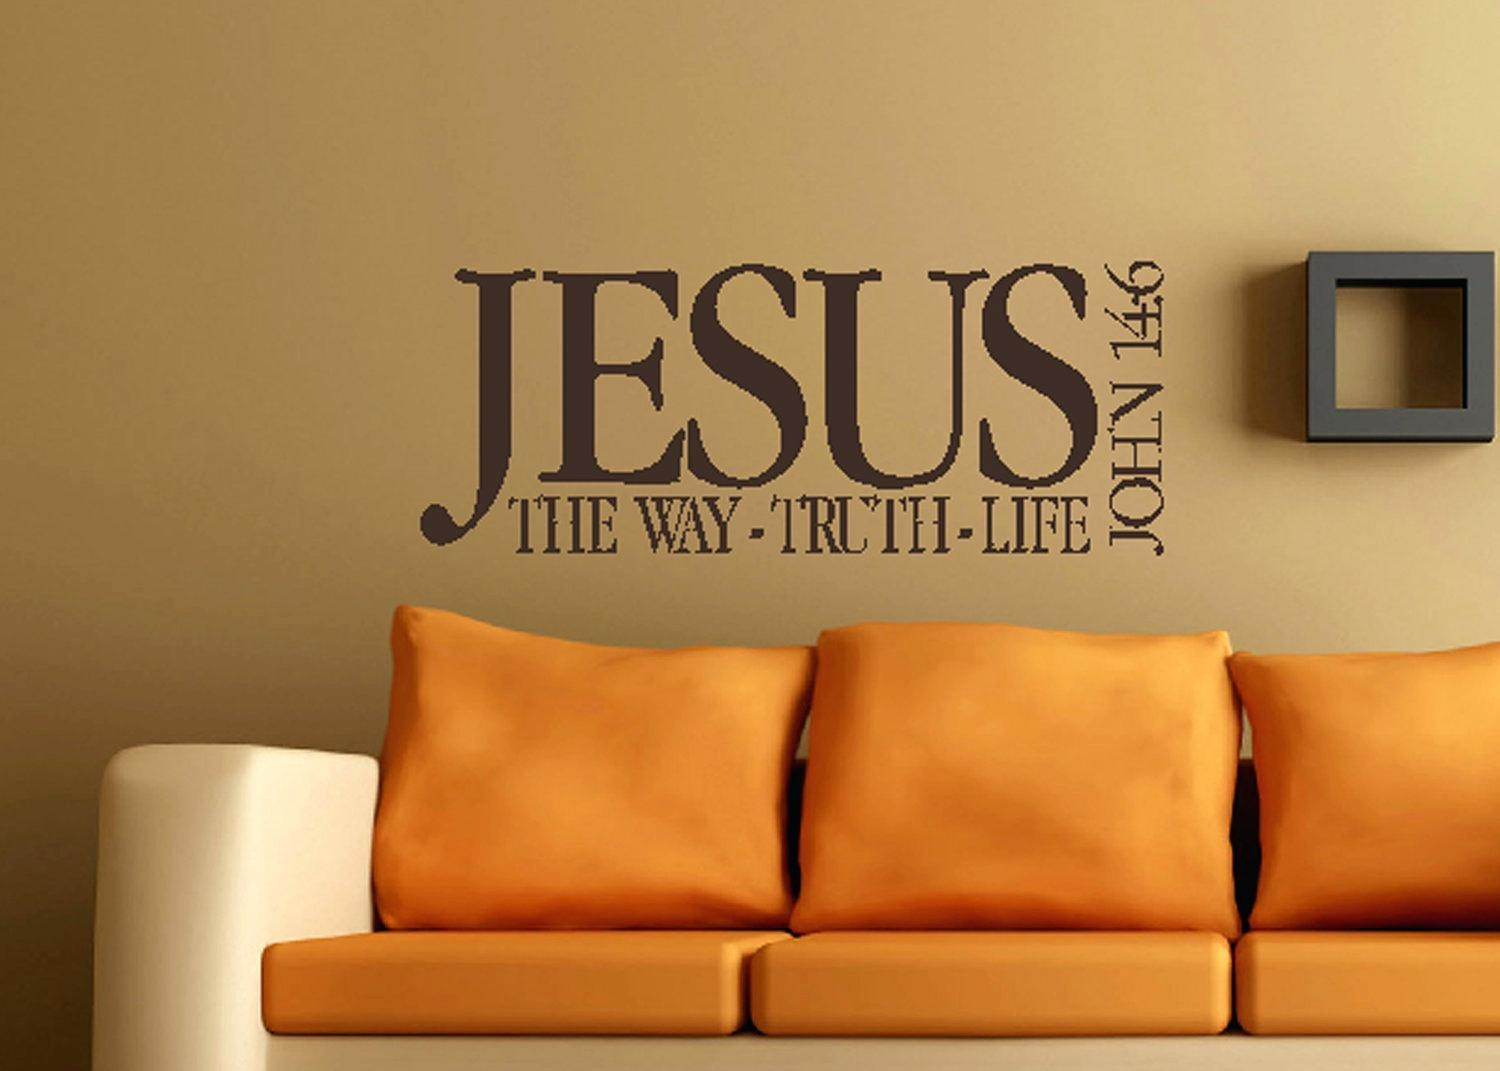 Wall Decor With Bible Verses : Photos scripture vinyl wall art ideas